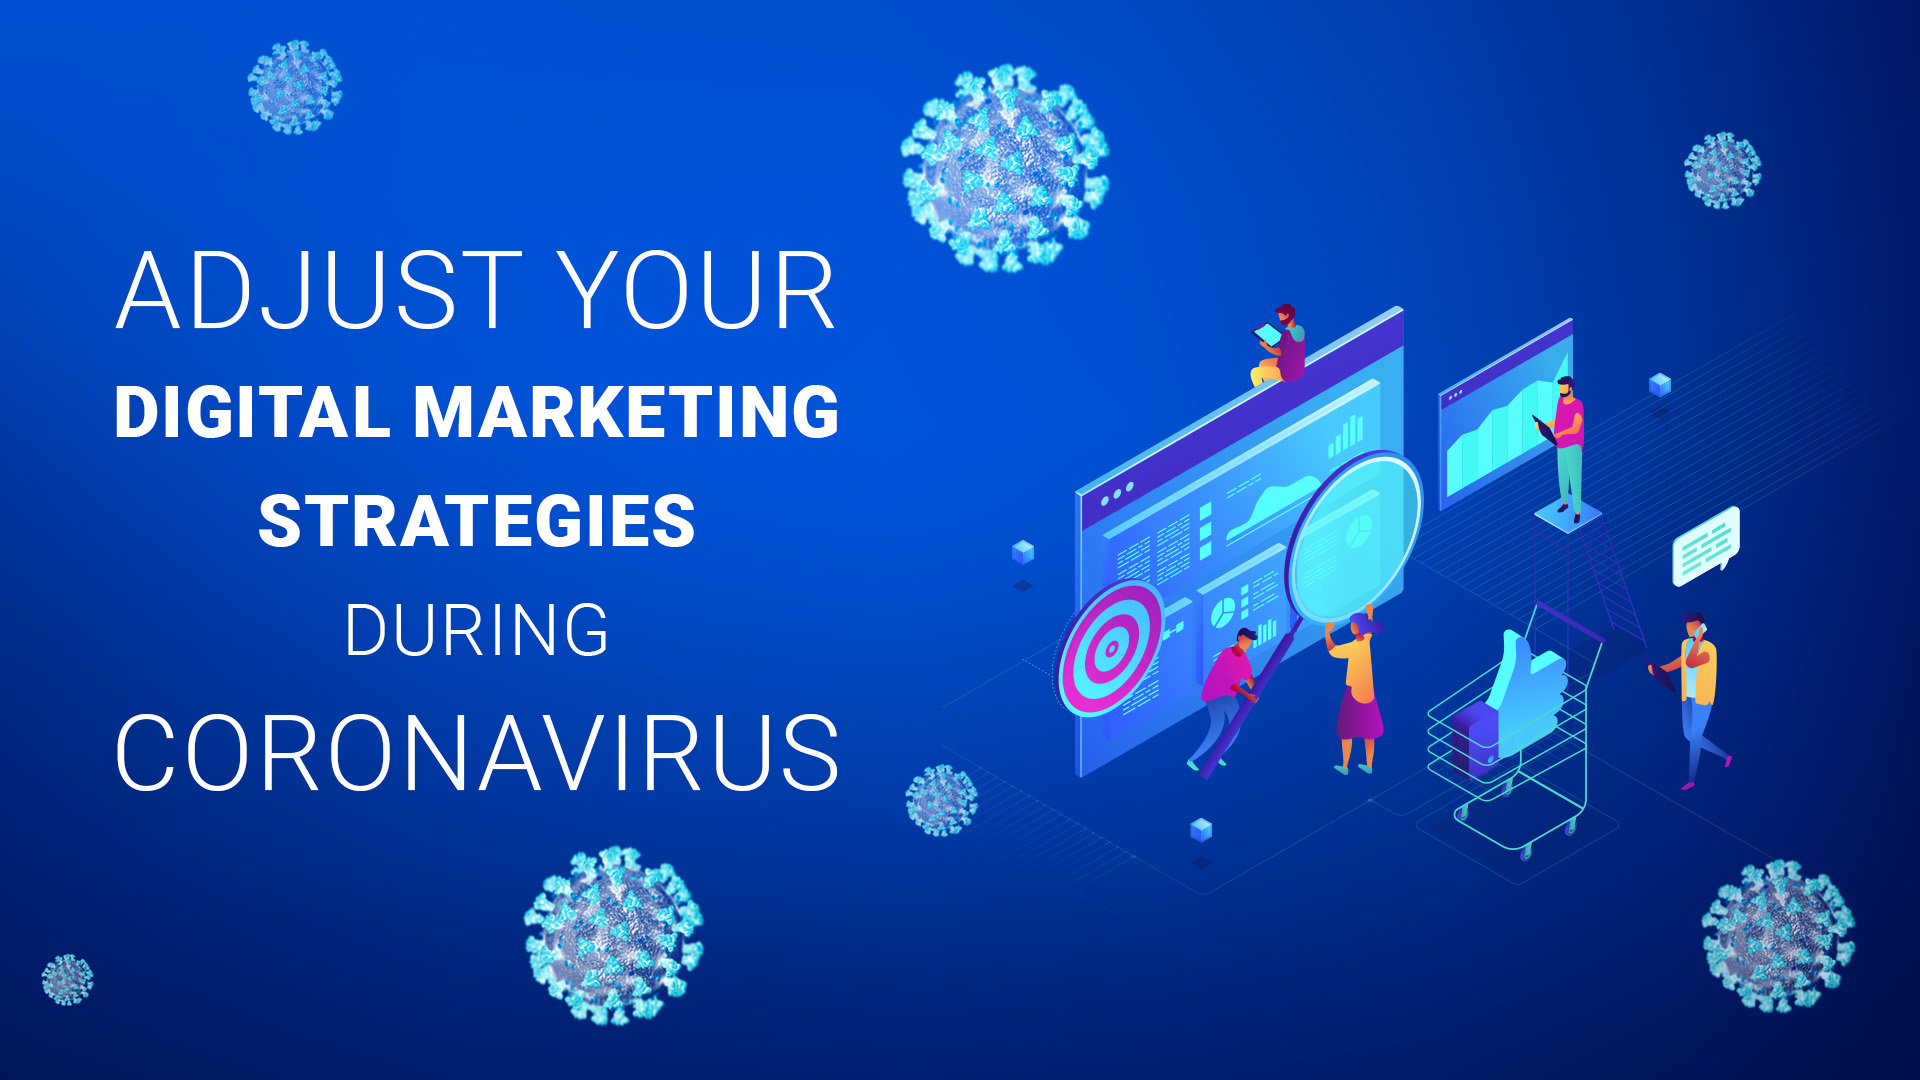 How To Adjust Your Digital Marketing Strategy During Coronavirus